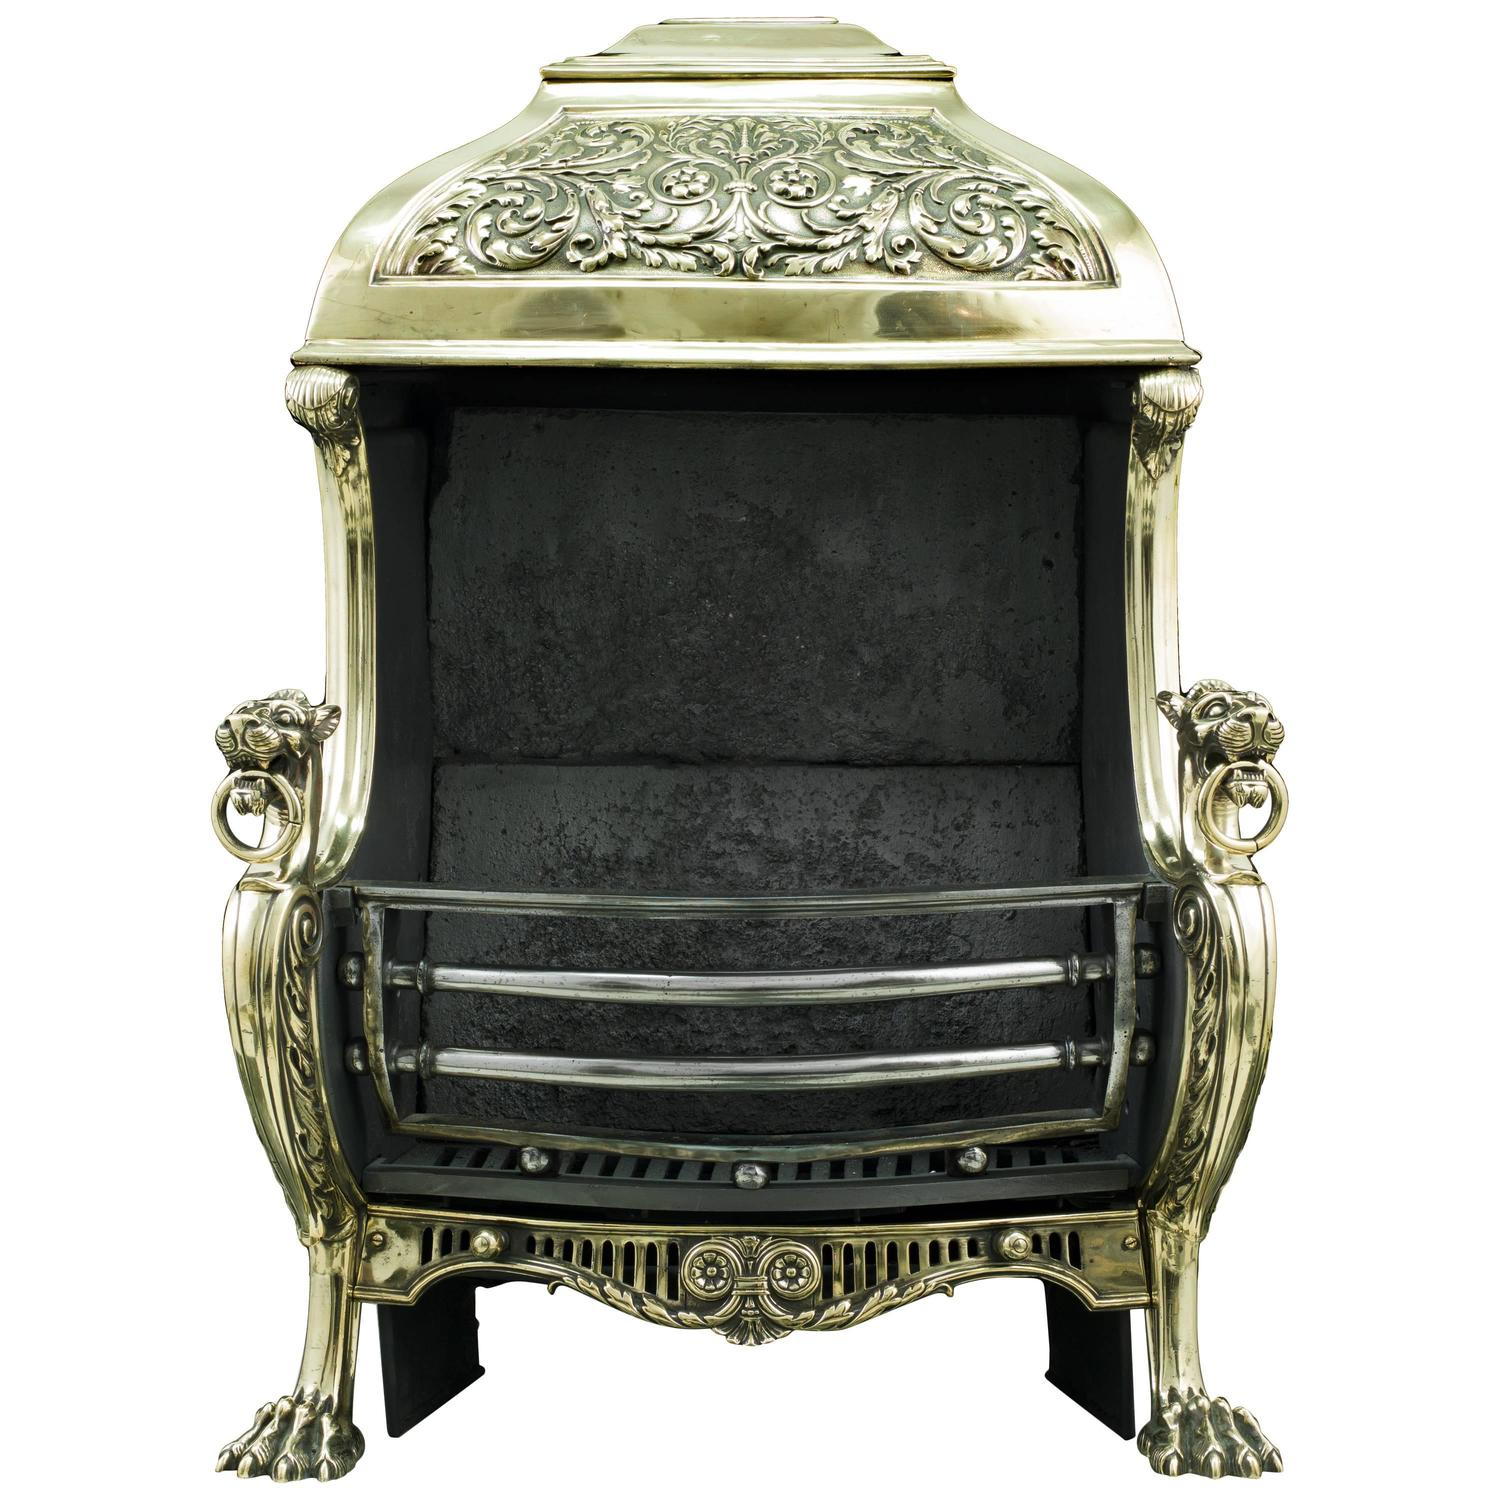 19th century renaissance style brass hooded antique fireplace